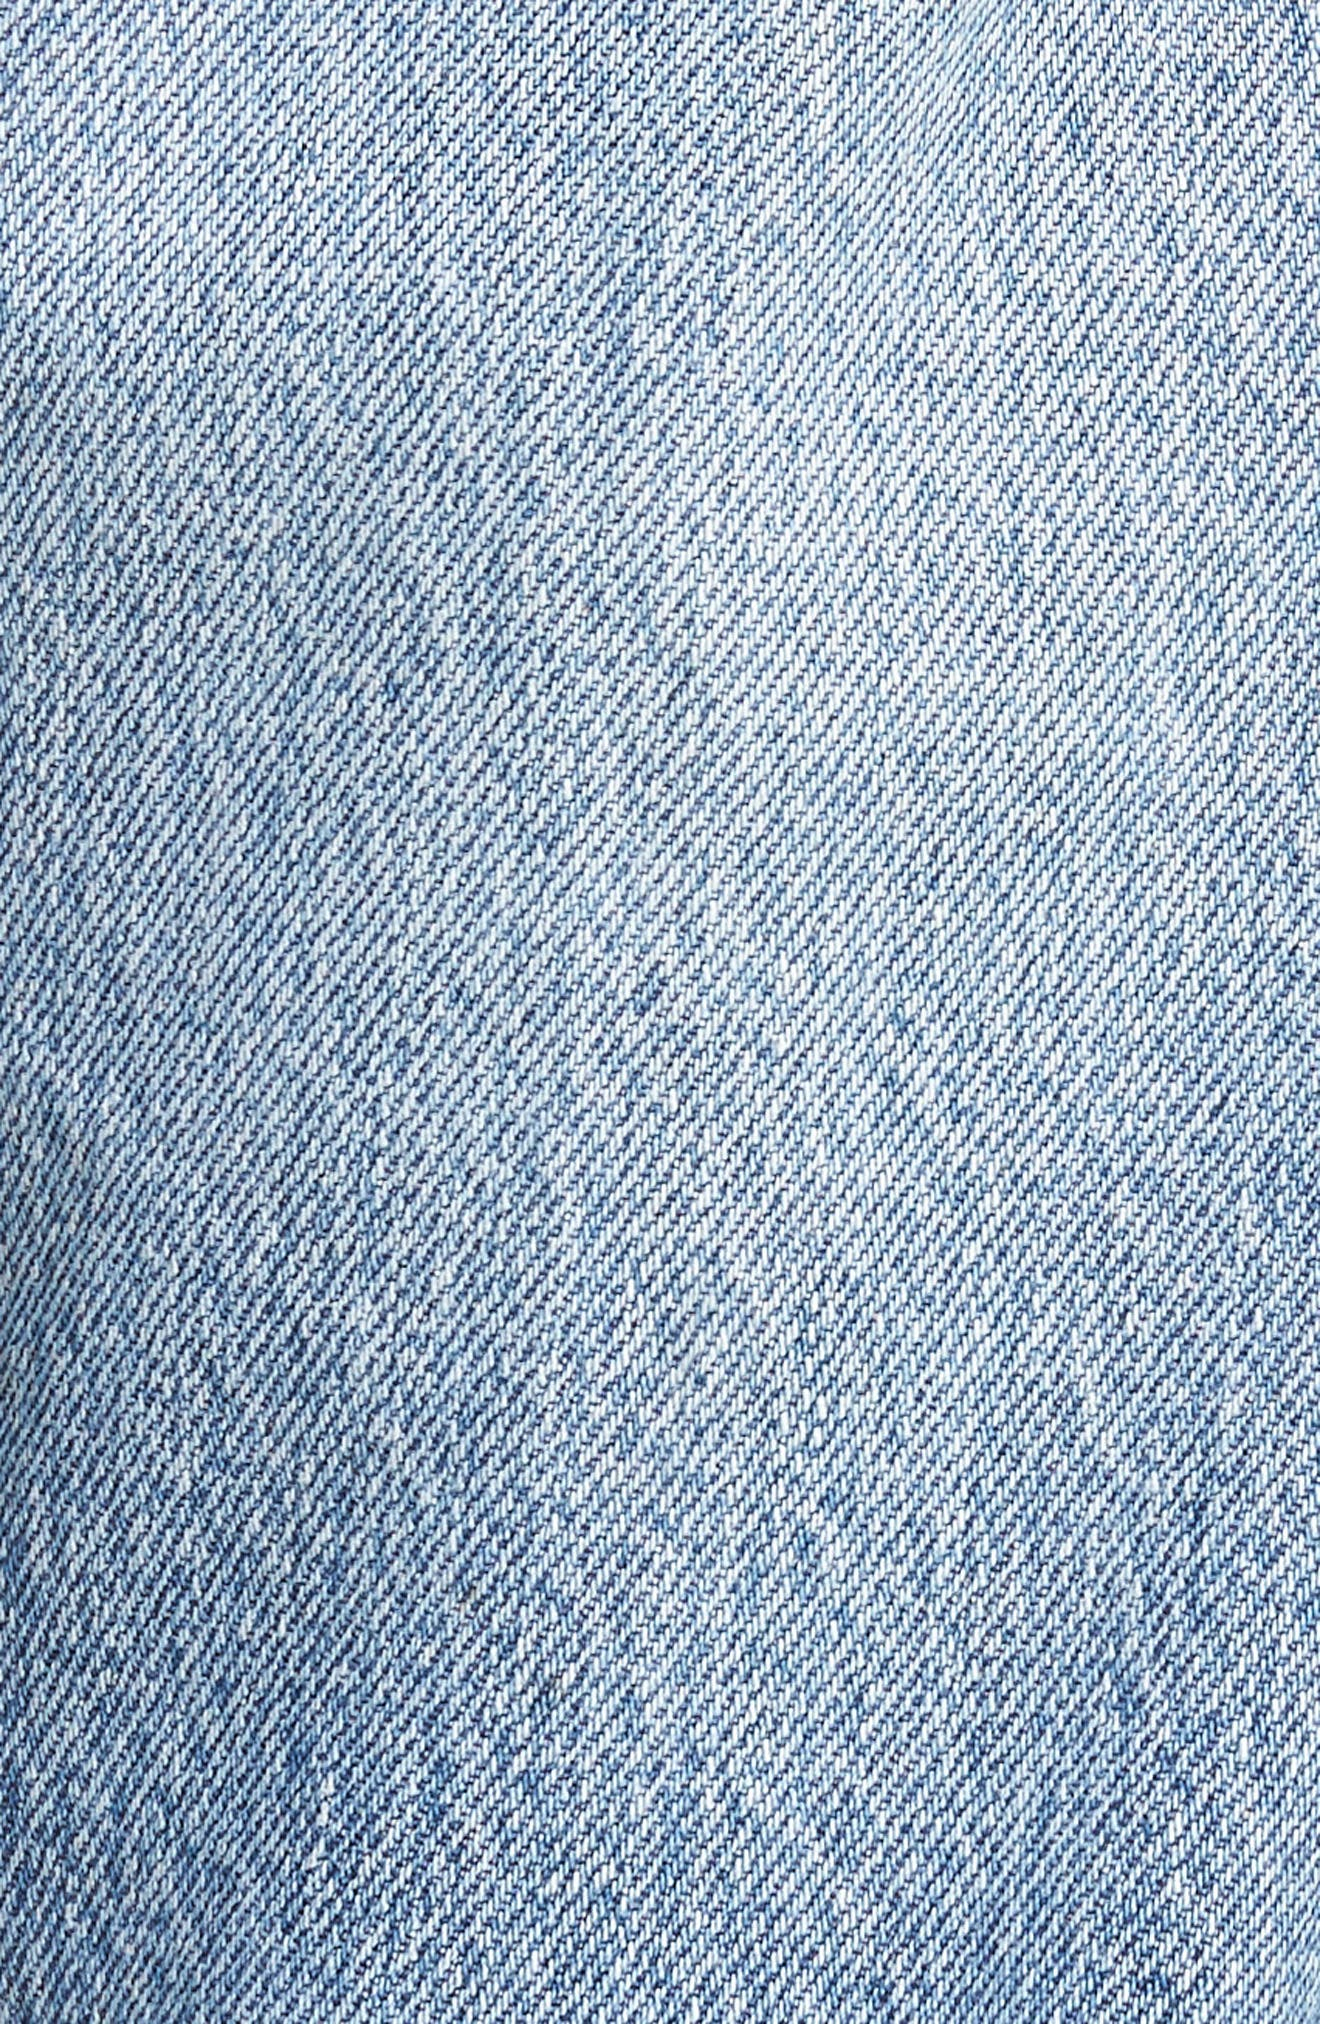 LEVI'S<SUP>®</SUP>, Authorized Vintage 501<sup>™</sup> Tapered Slim Fit Jeans, Alternate thumbnail 5, color, 400